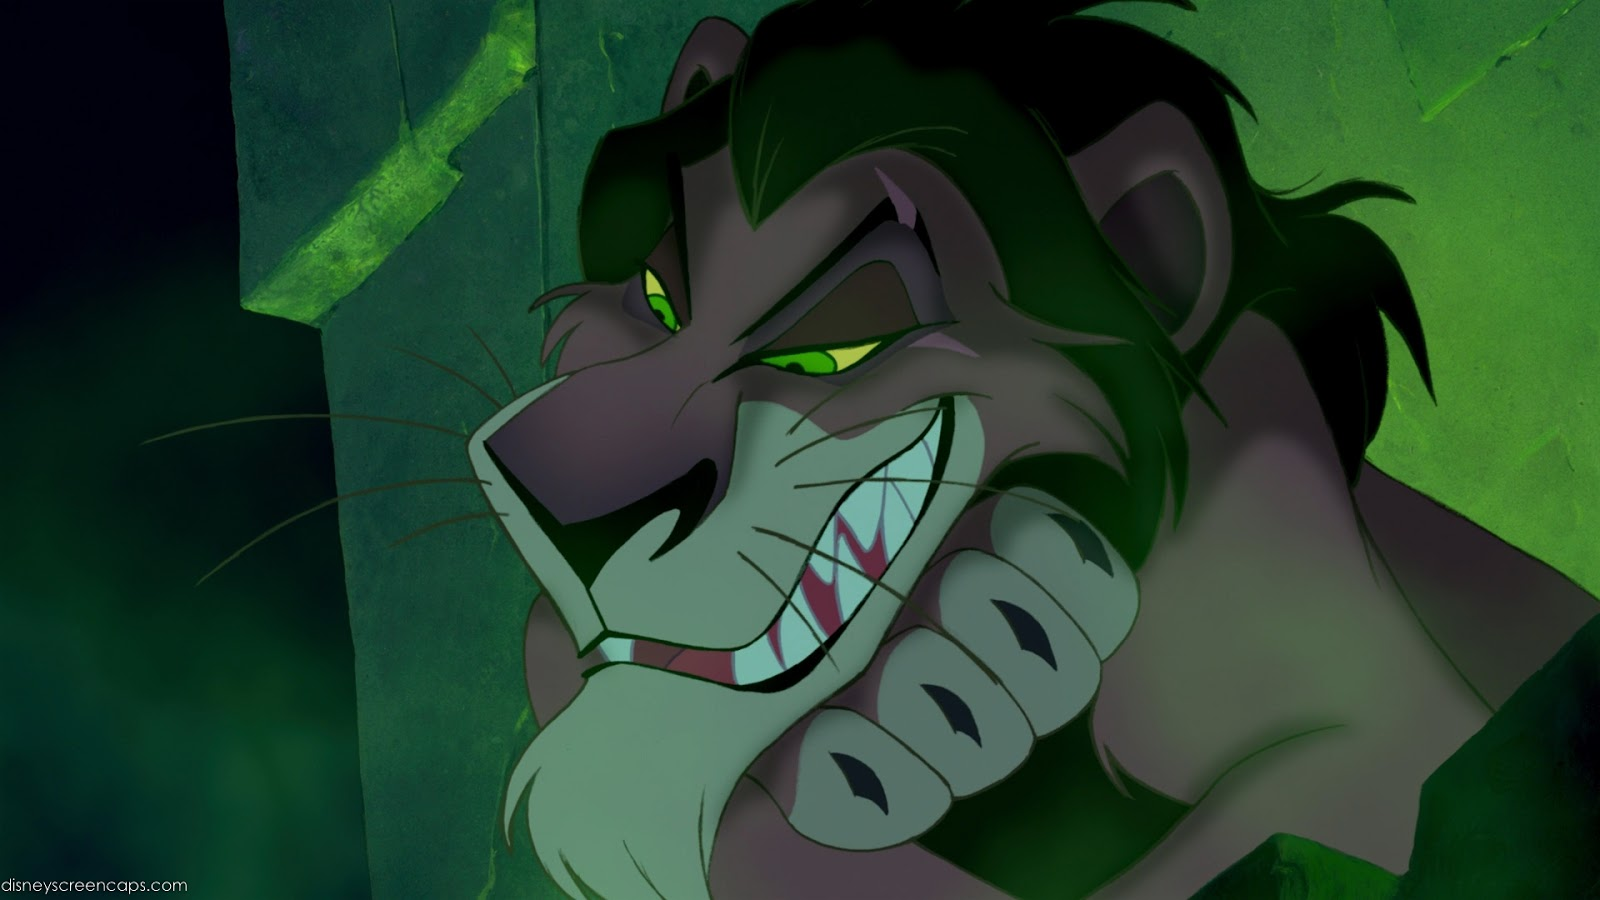 scar-the-lion-king-35925483-1600-900